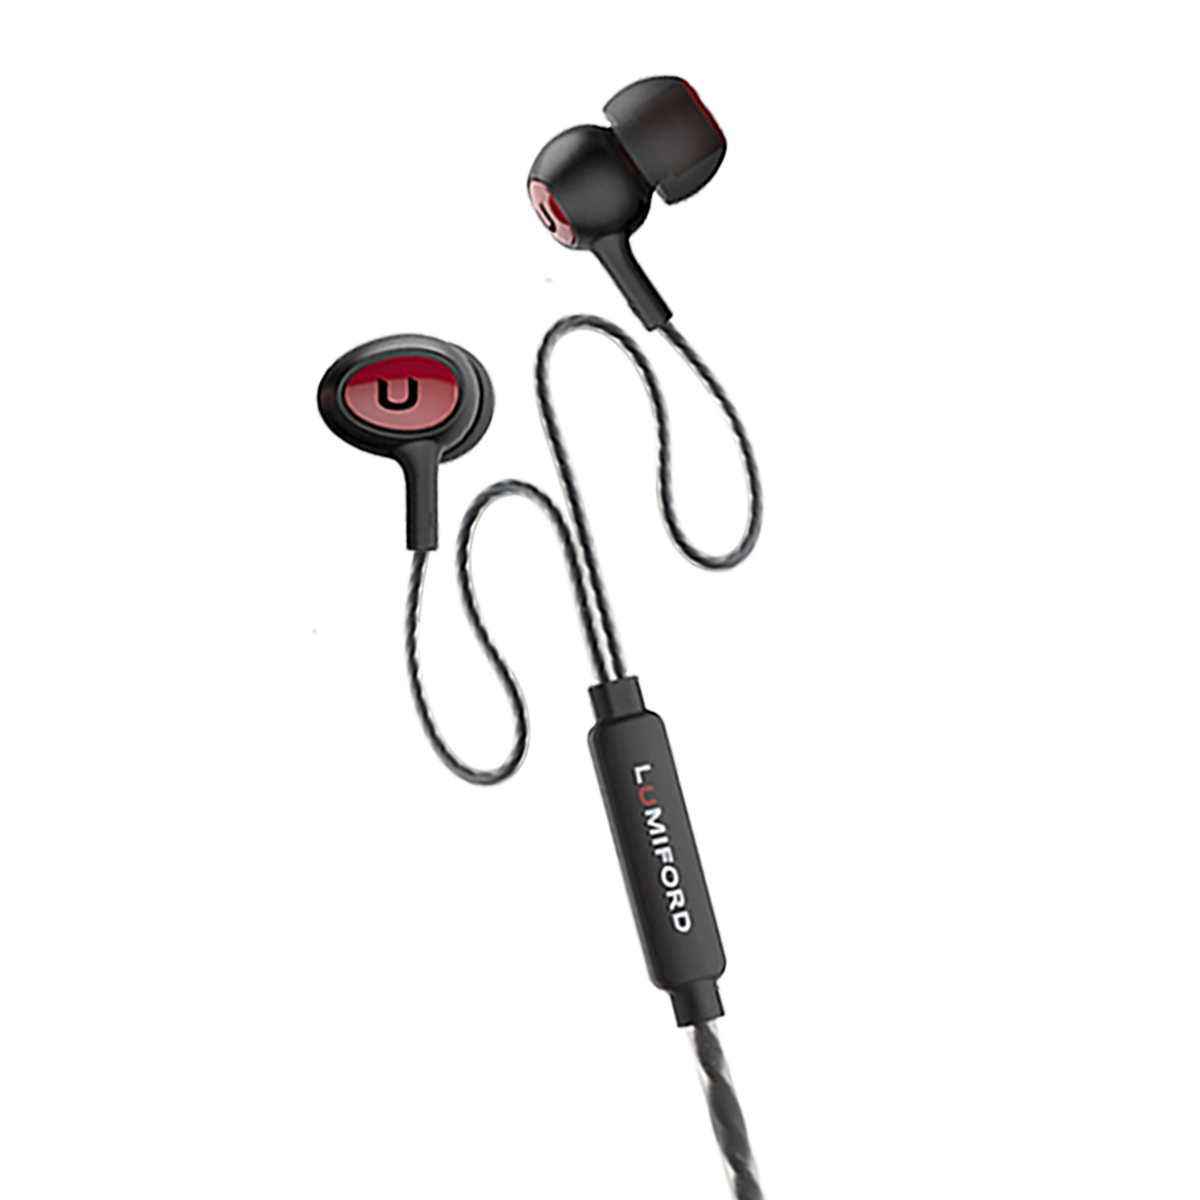 LUMIFORD U20 ULTIMATE SERIES WIRED IN-EAR EARPHONE RED